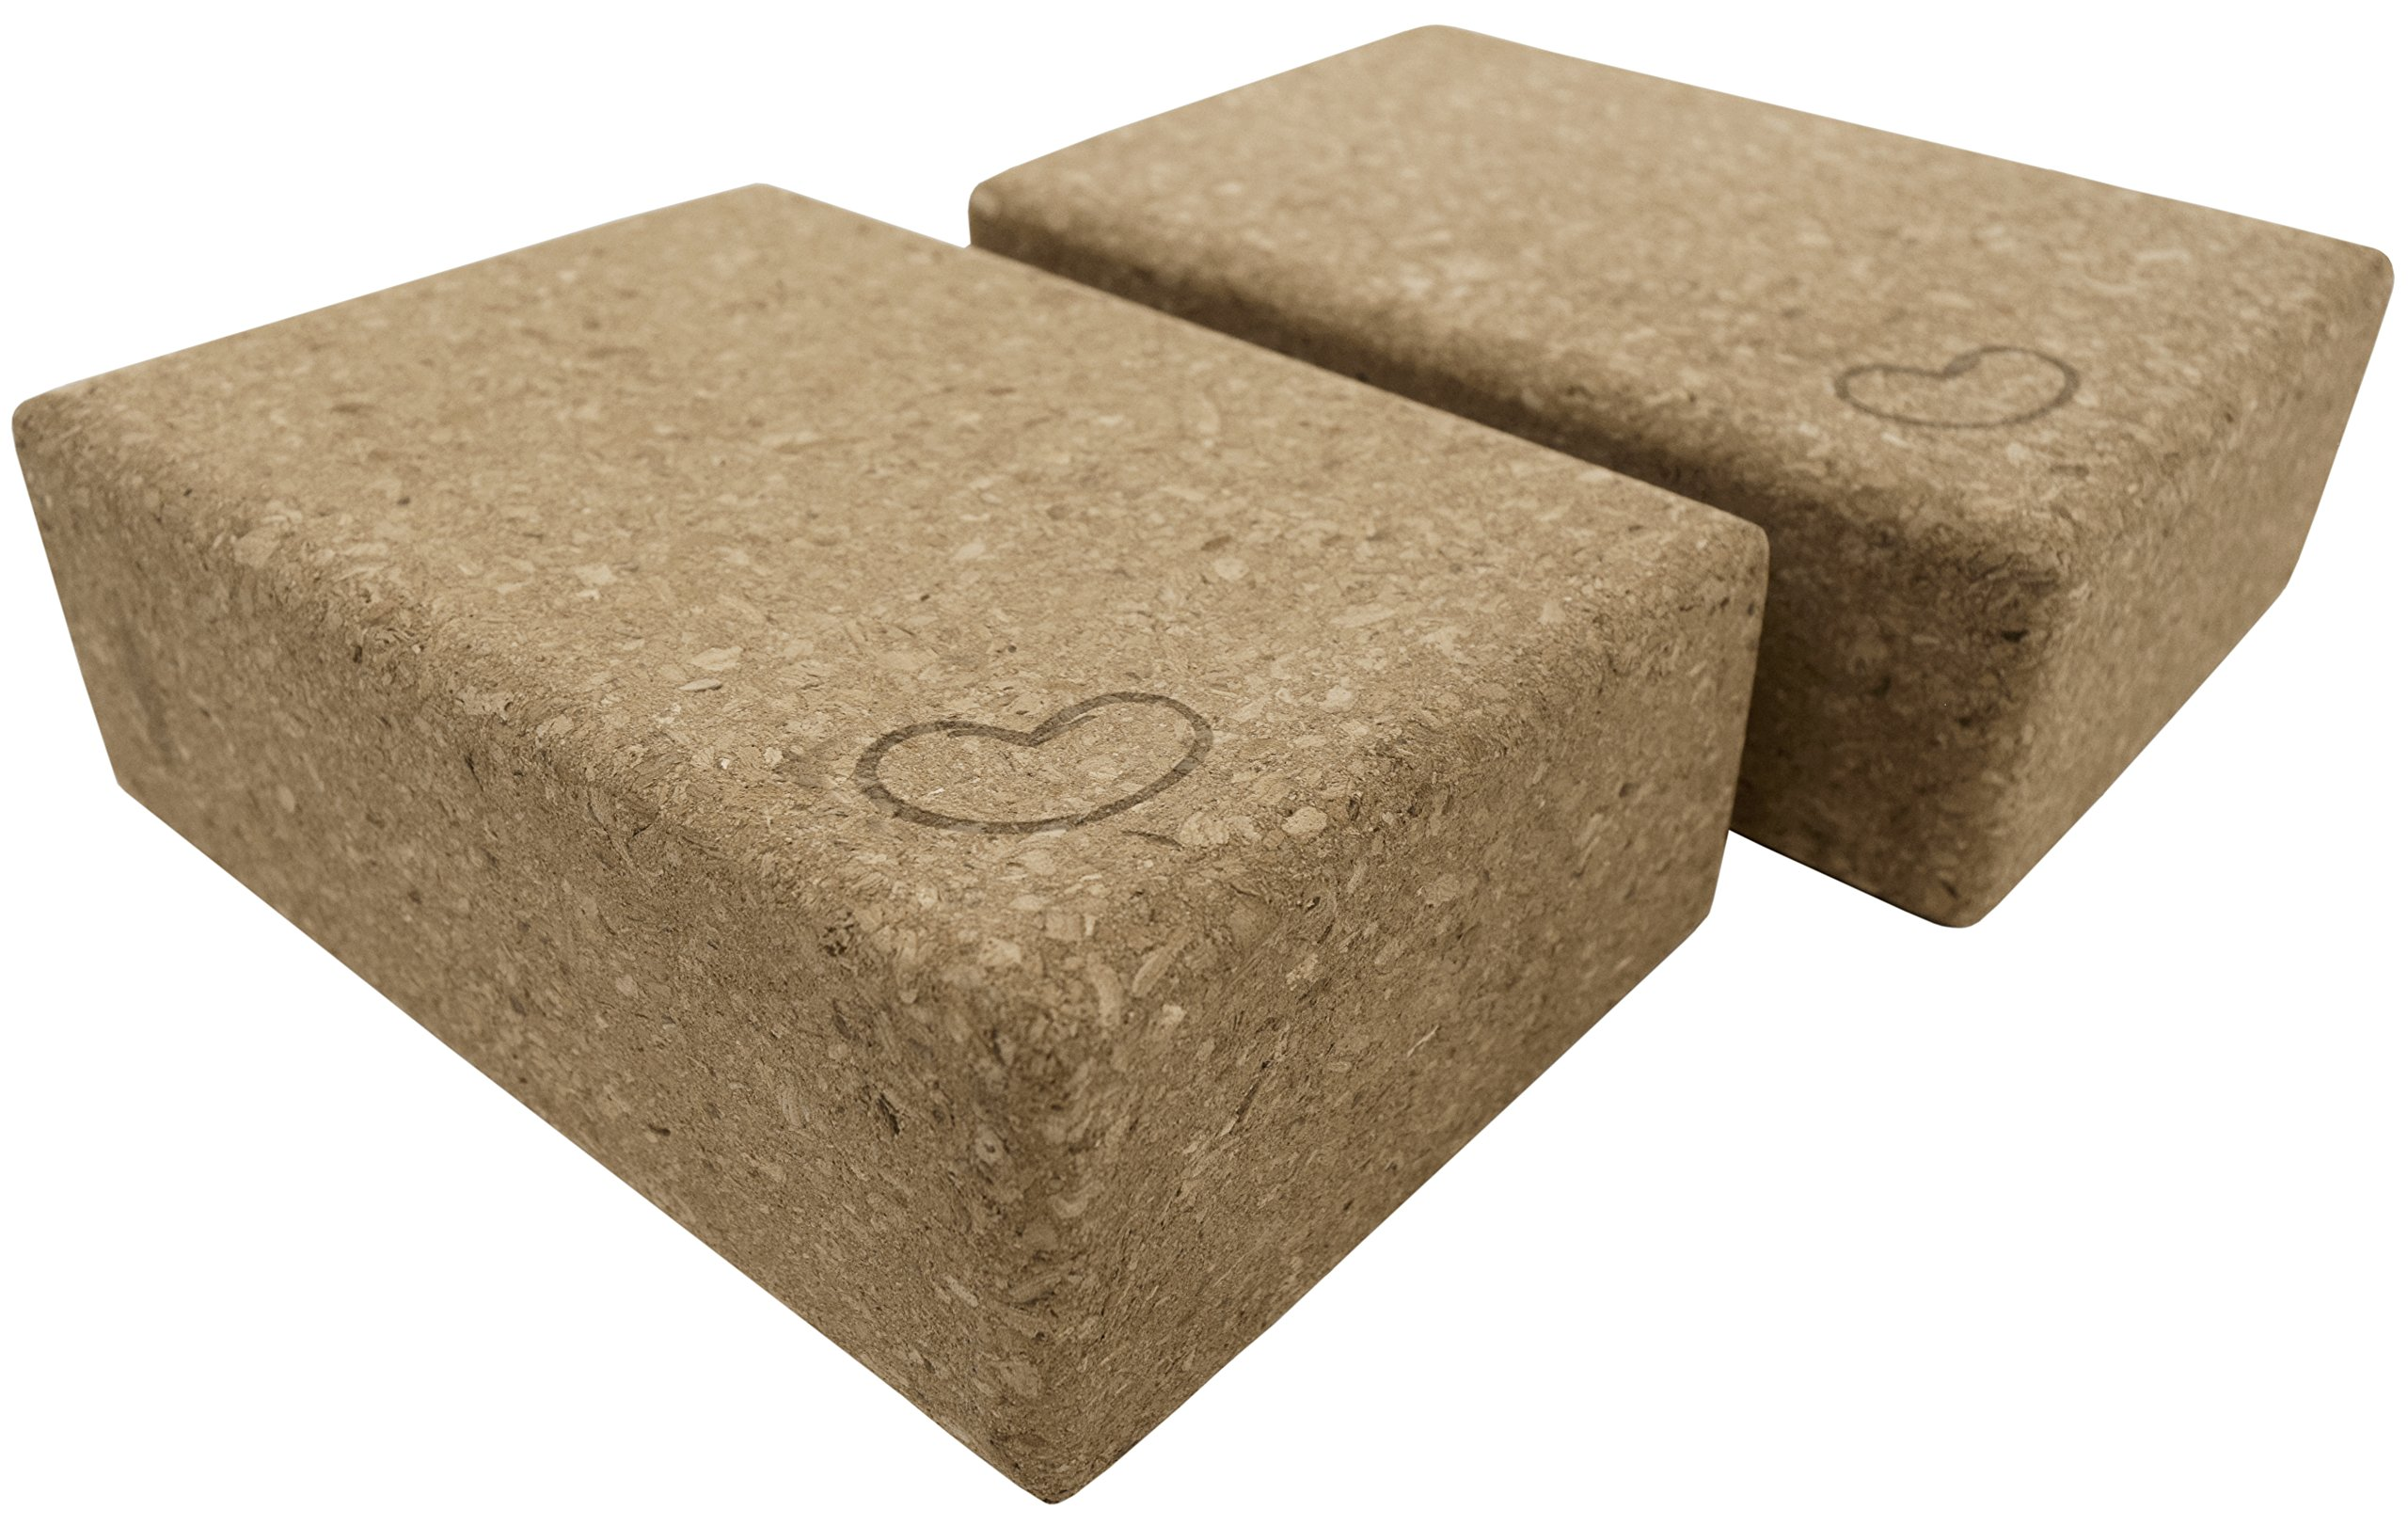 Bean Products Eco Yoga Cork Blocks 2 Pack 3 in x 6 x in x 9 in Standard Size